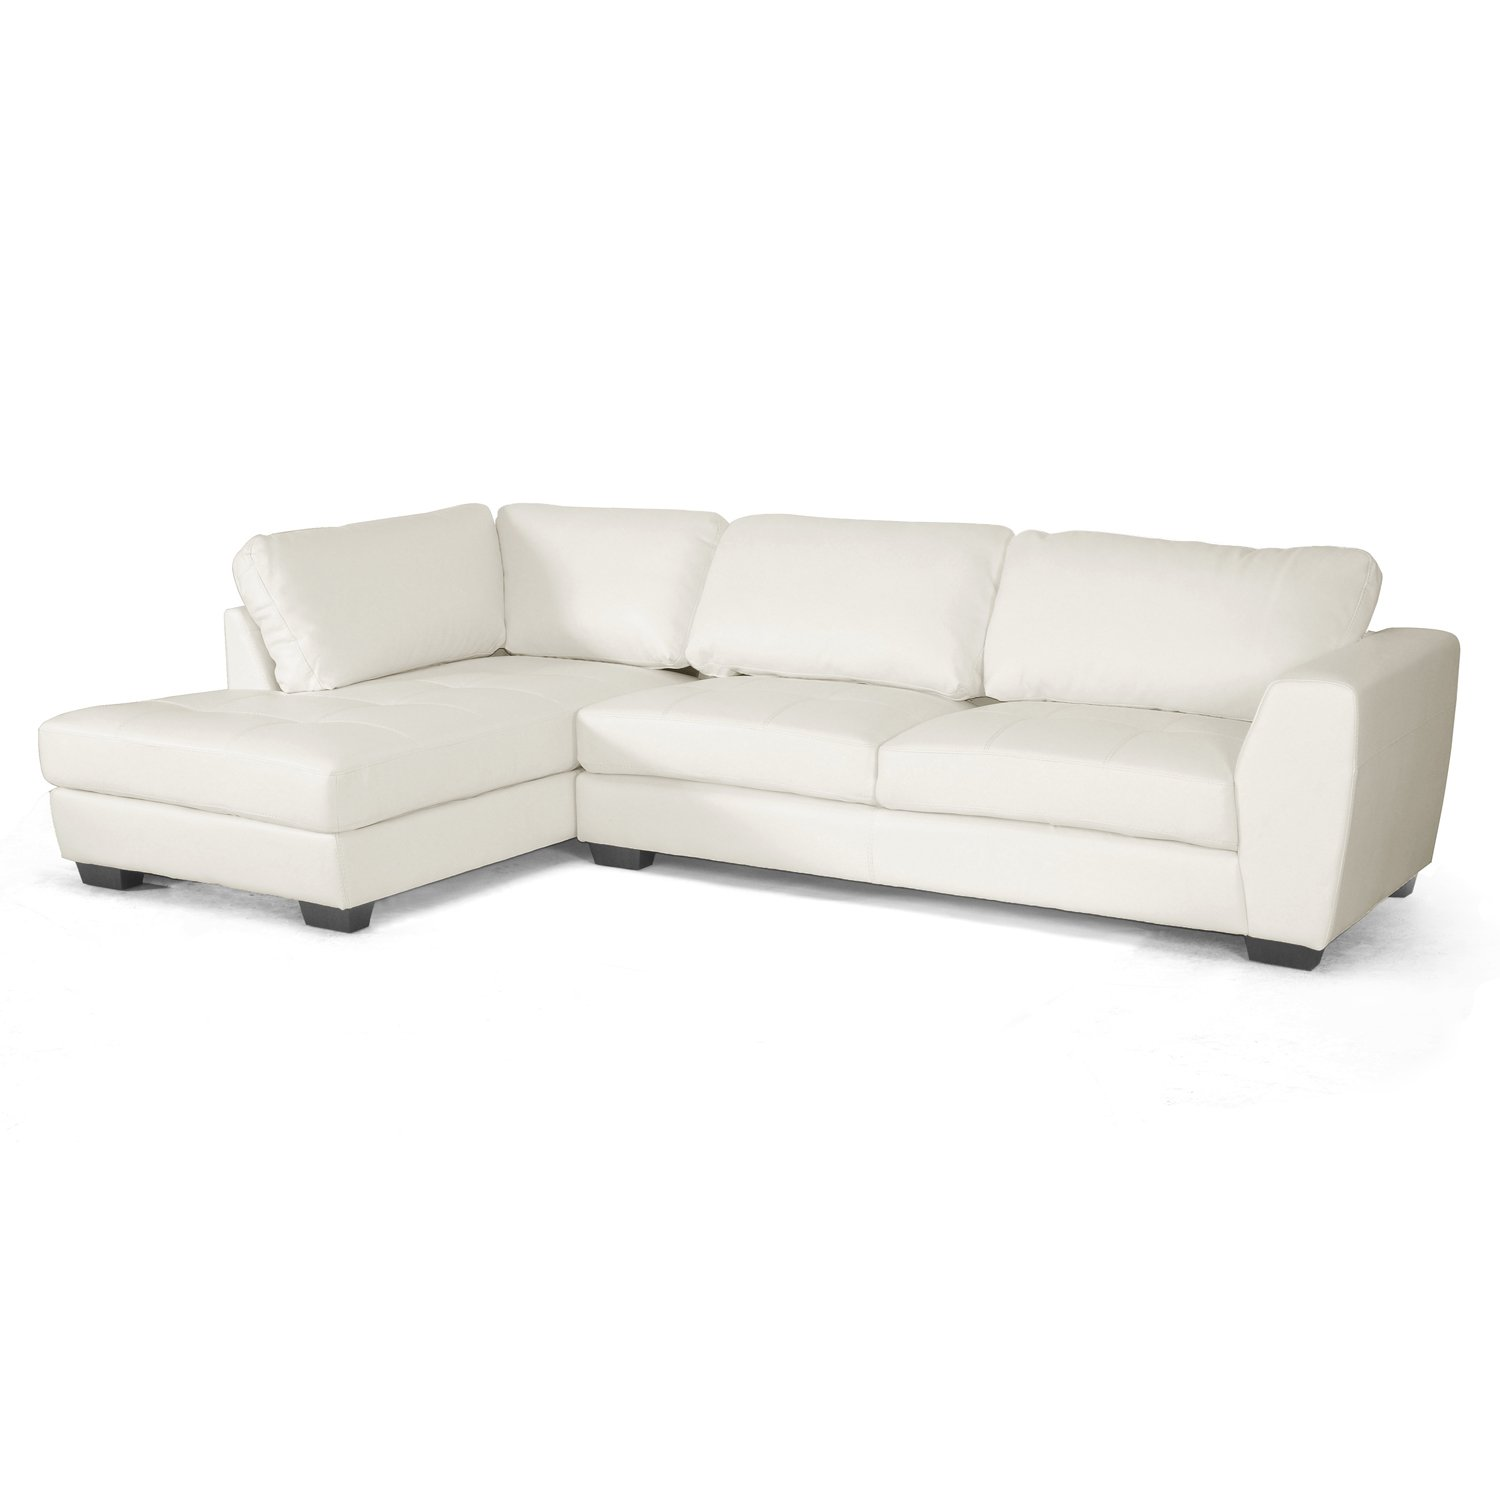 item wedge s left chase number products sectional with clanton as klaussner r chaise transitional sofa